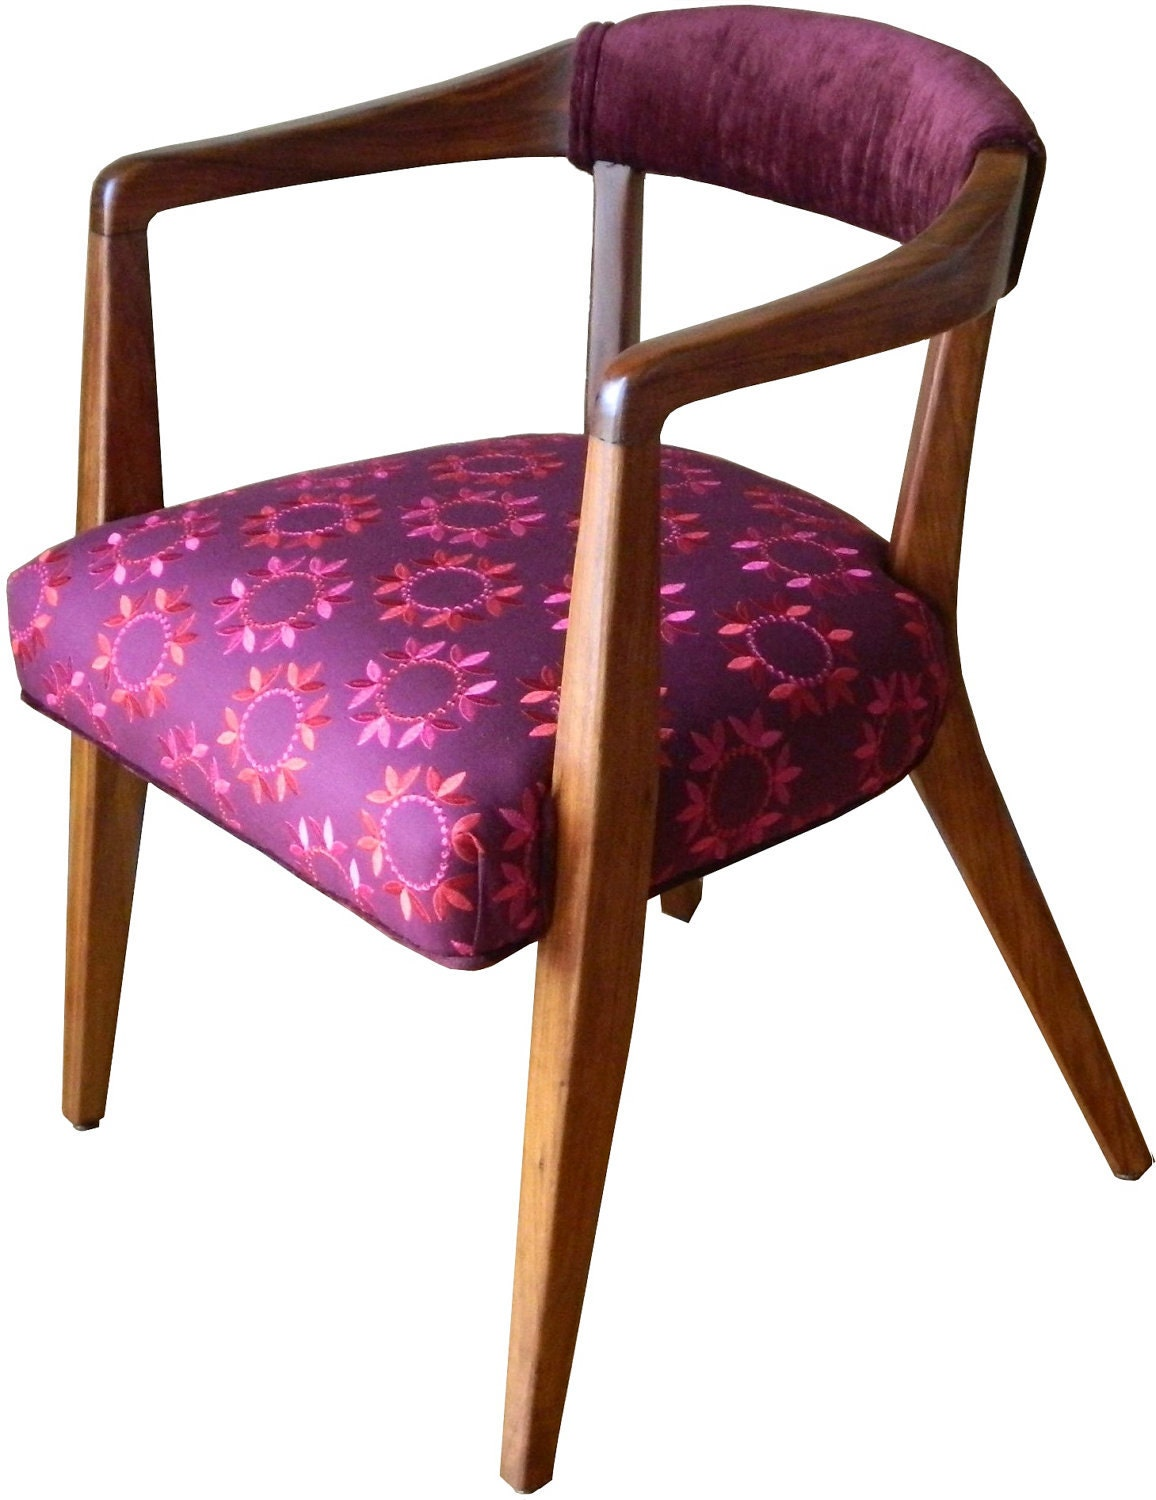 SALE Mid Century Office Side Chairs Pair In Wine And Velvet